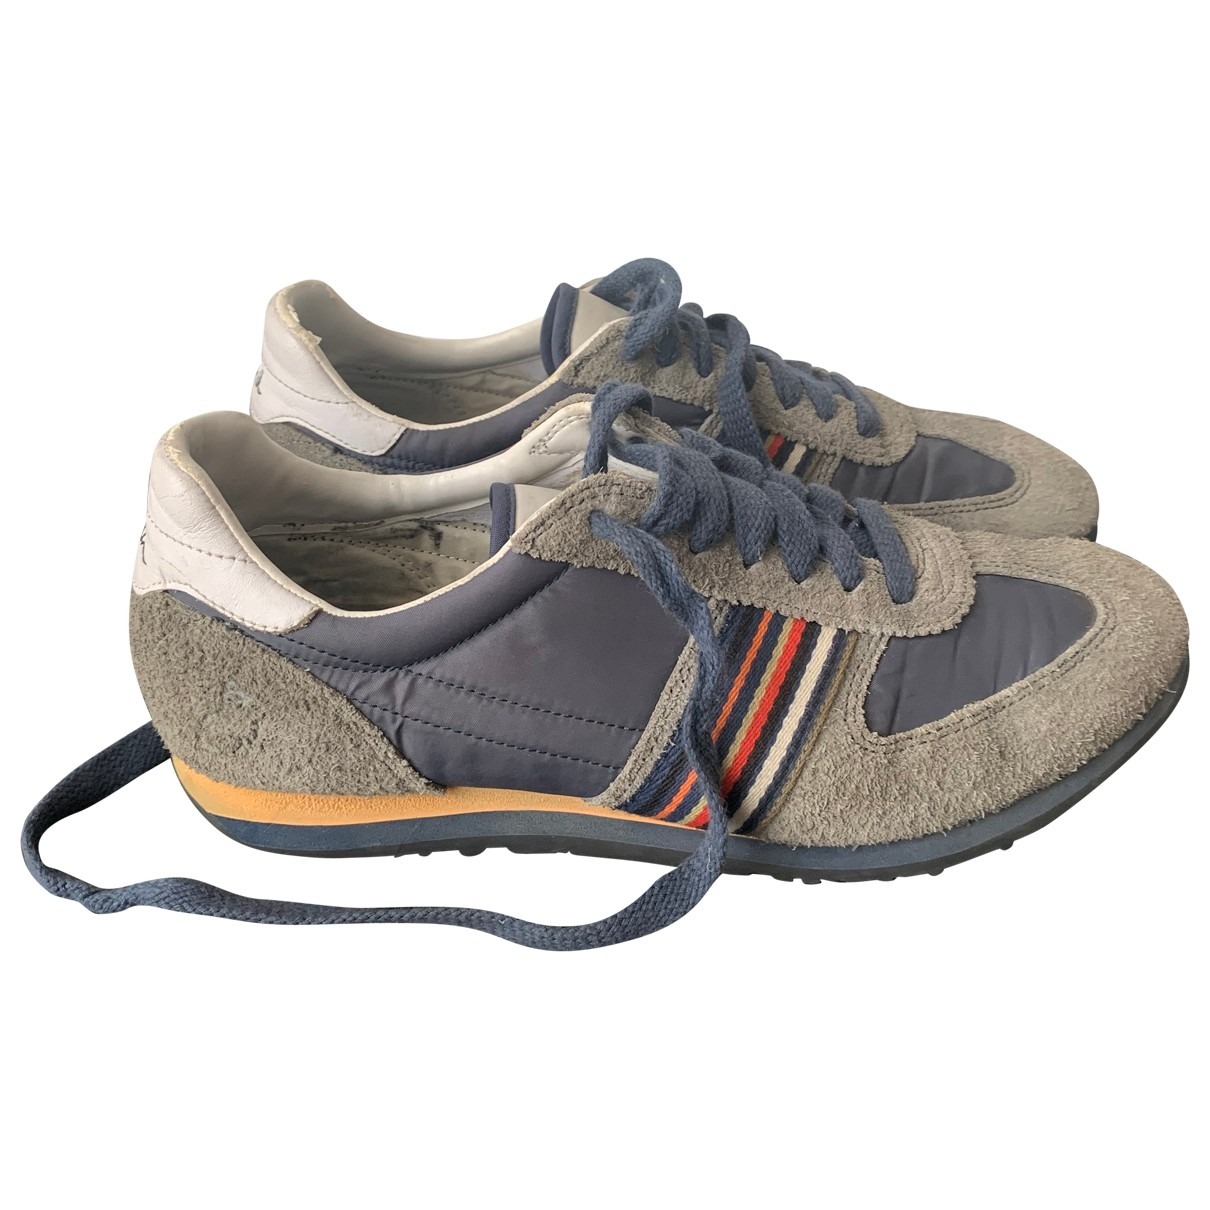 Paul Smith \N Sneakers in  Weiss Leder